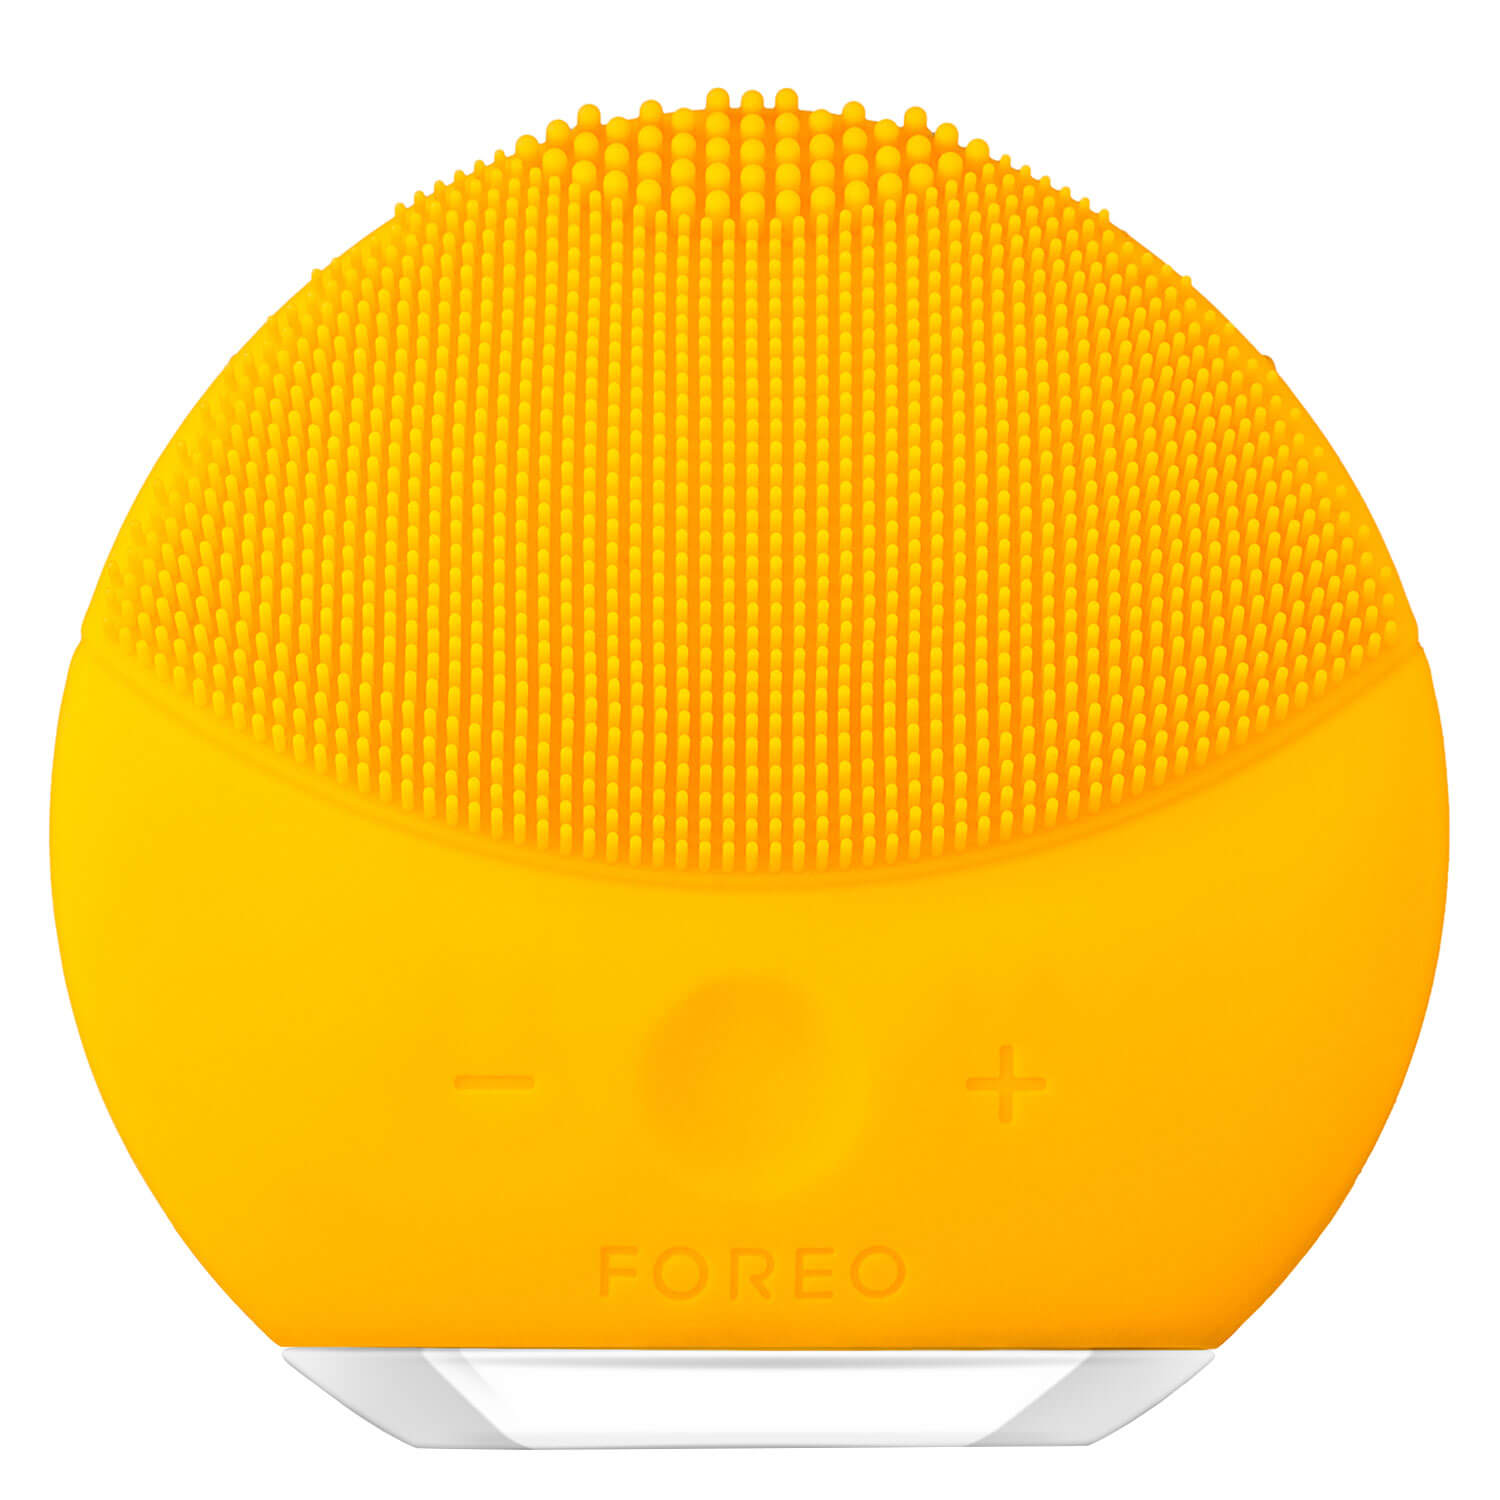 Luna Mini 2 - T-Sonic Gesichtsbürste Sunflower Yellow